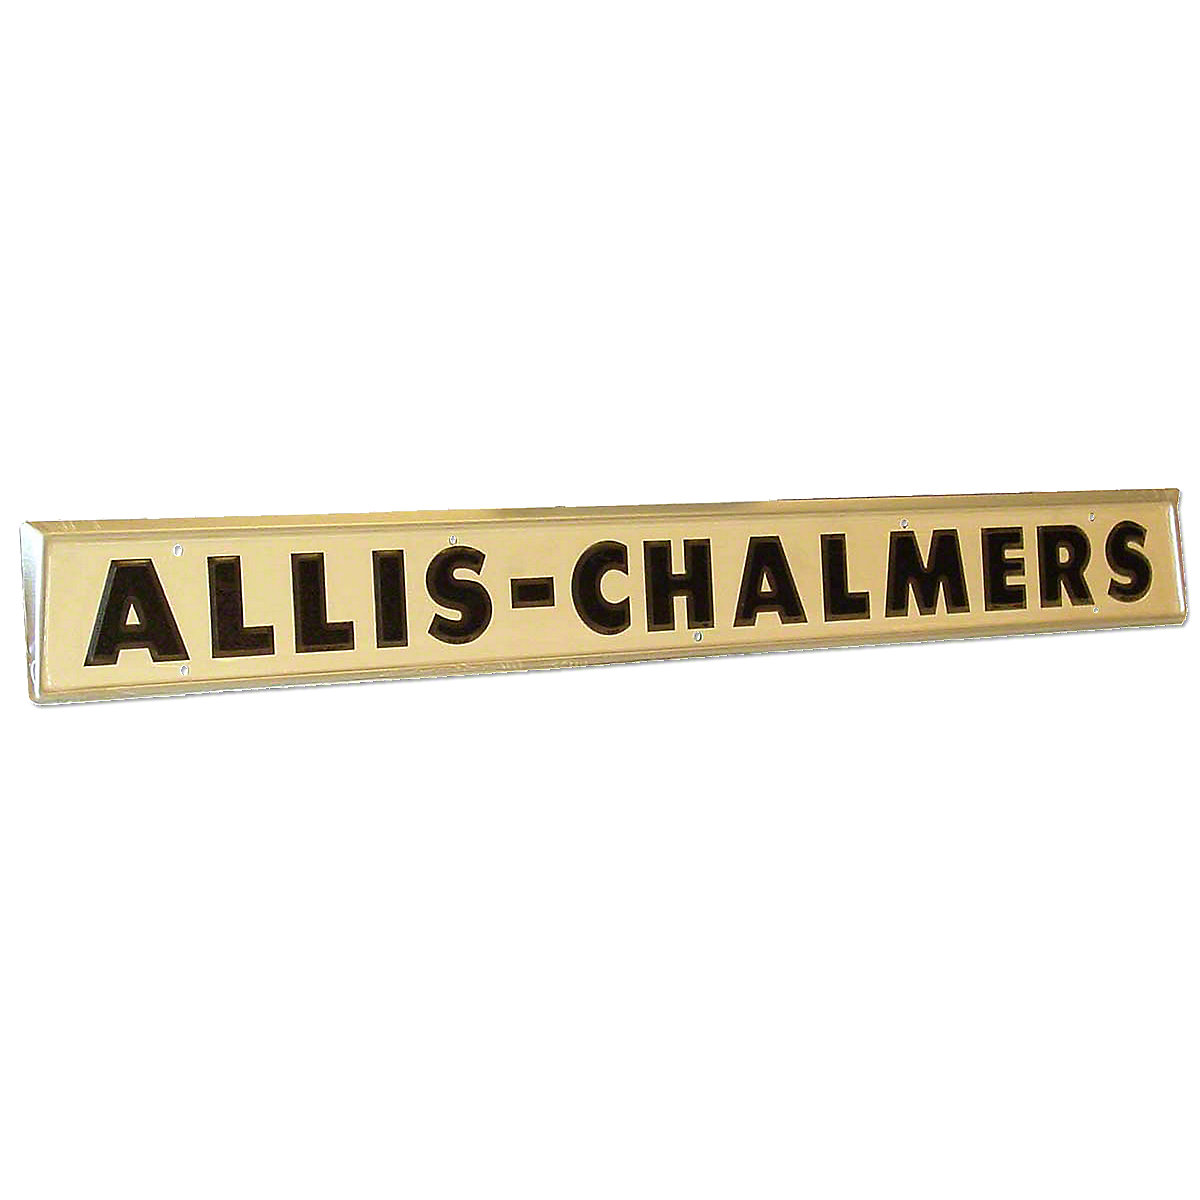 Side Emblem For Allis Chalmers: D10, D12, D15, D17.